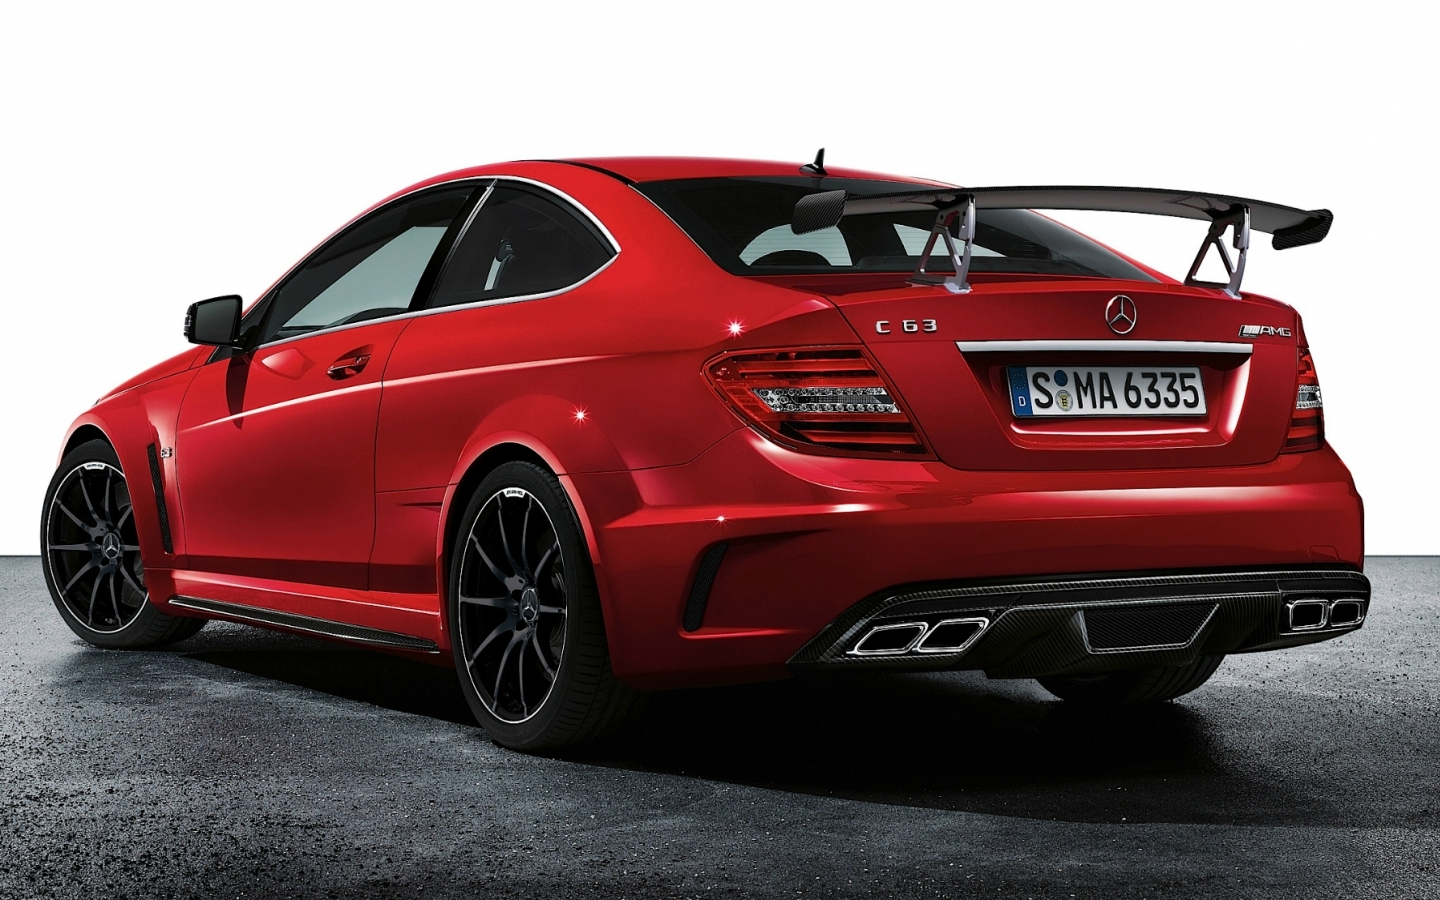 Mercedes benz c63 amg coupe mercedes benz wallpaper for Mercedes benz c63 amg sedan